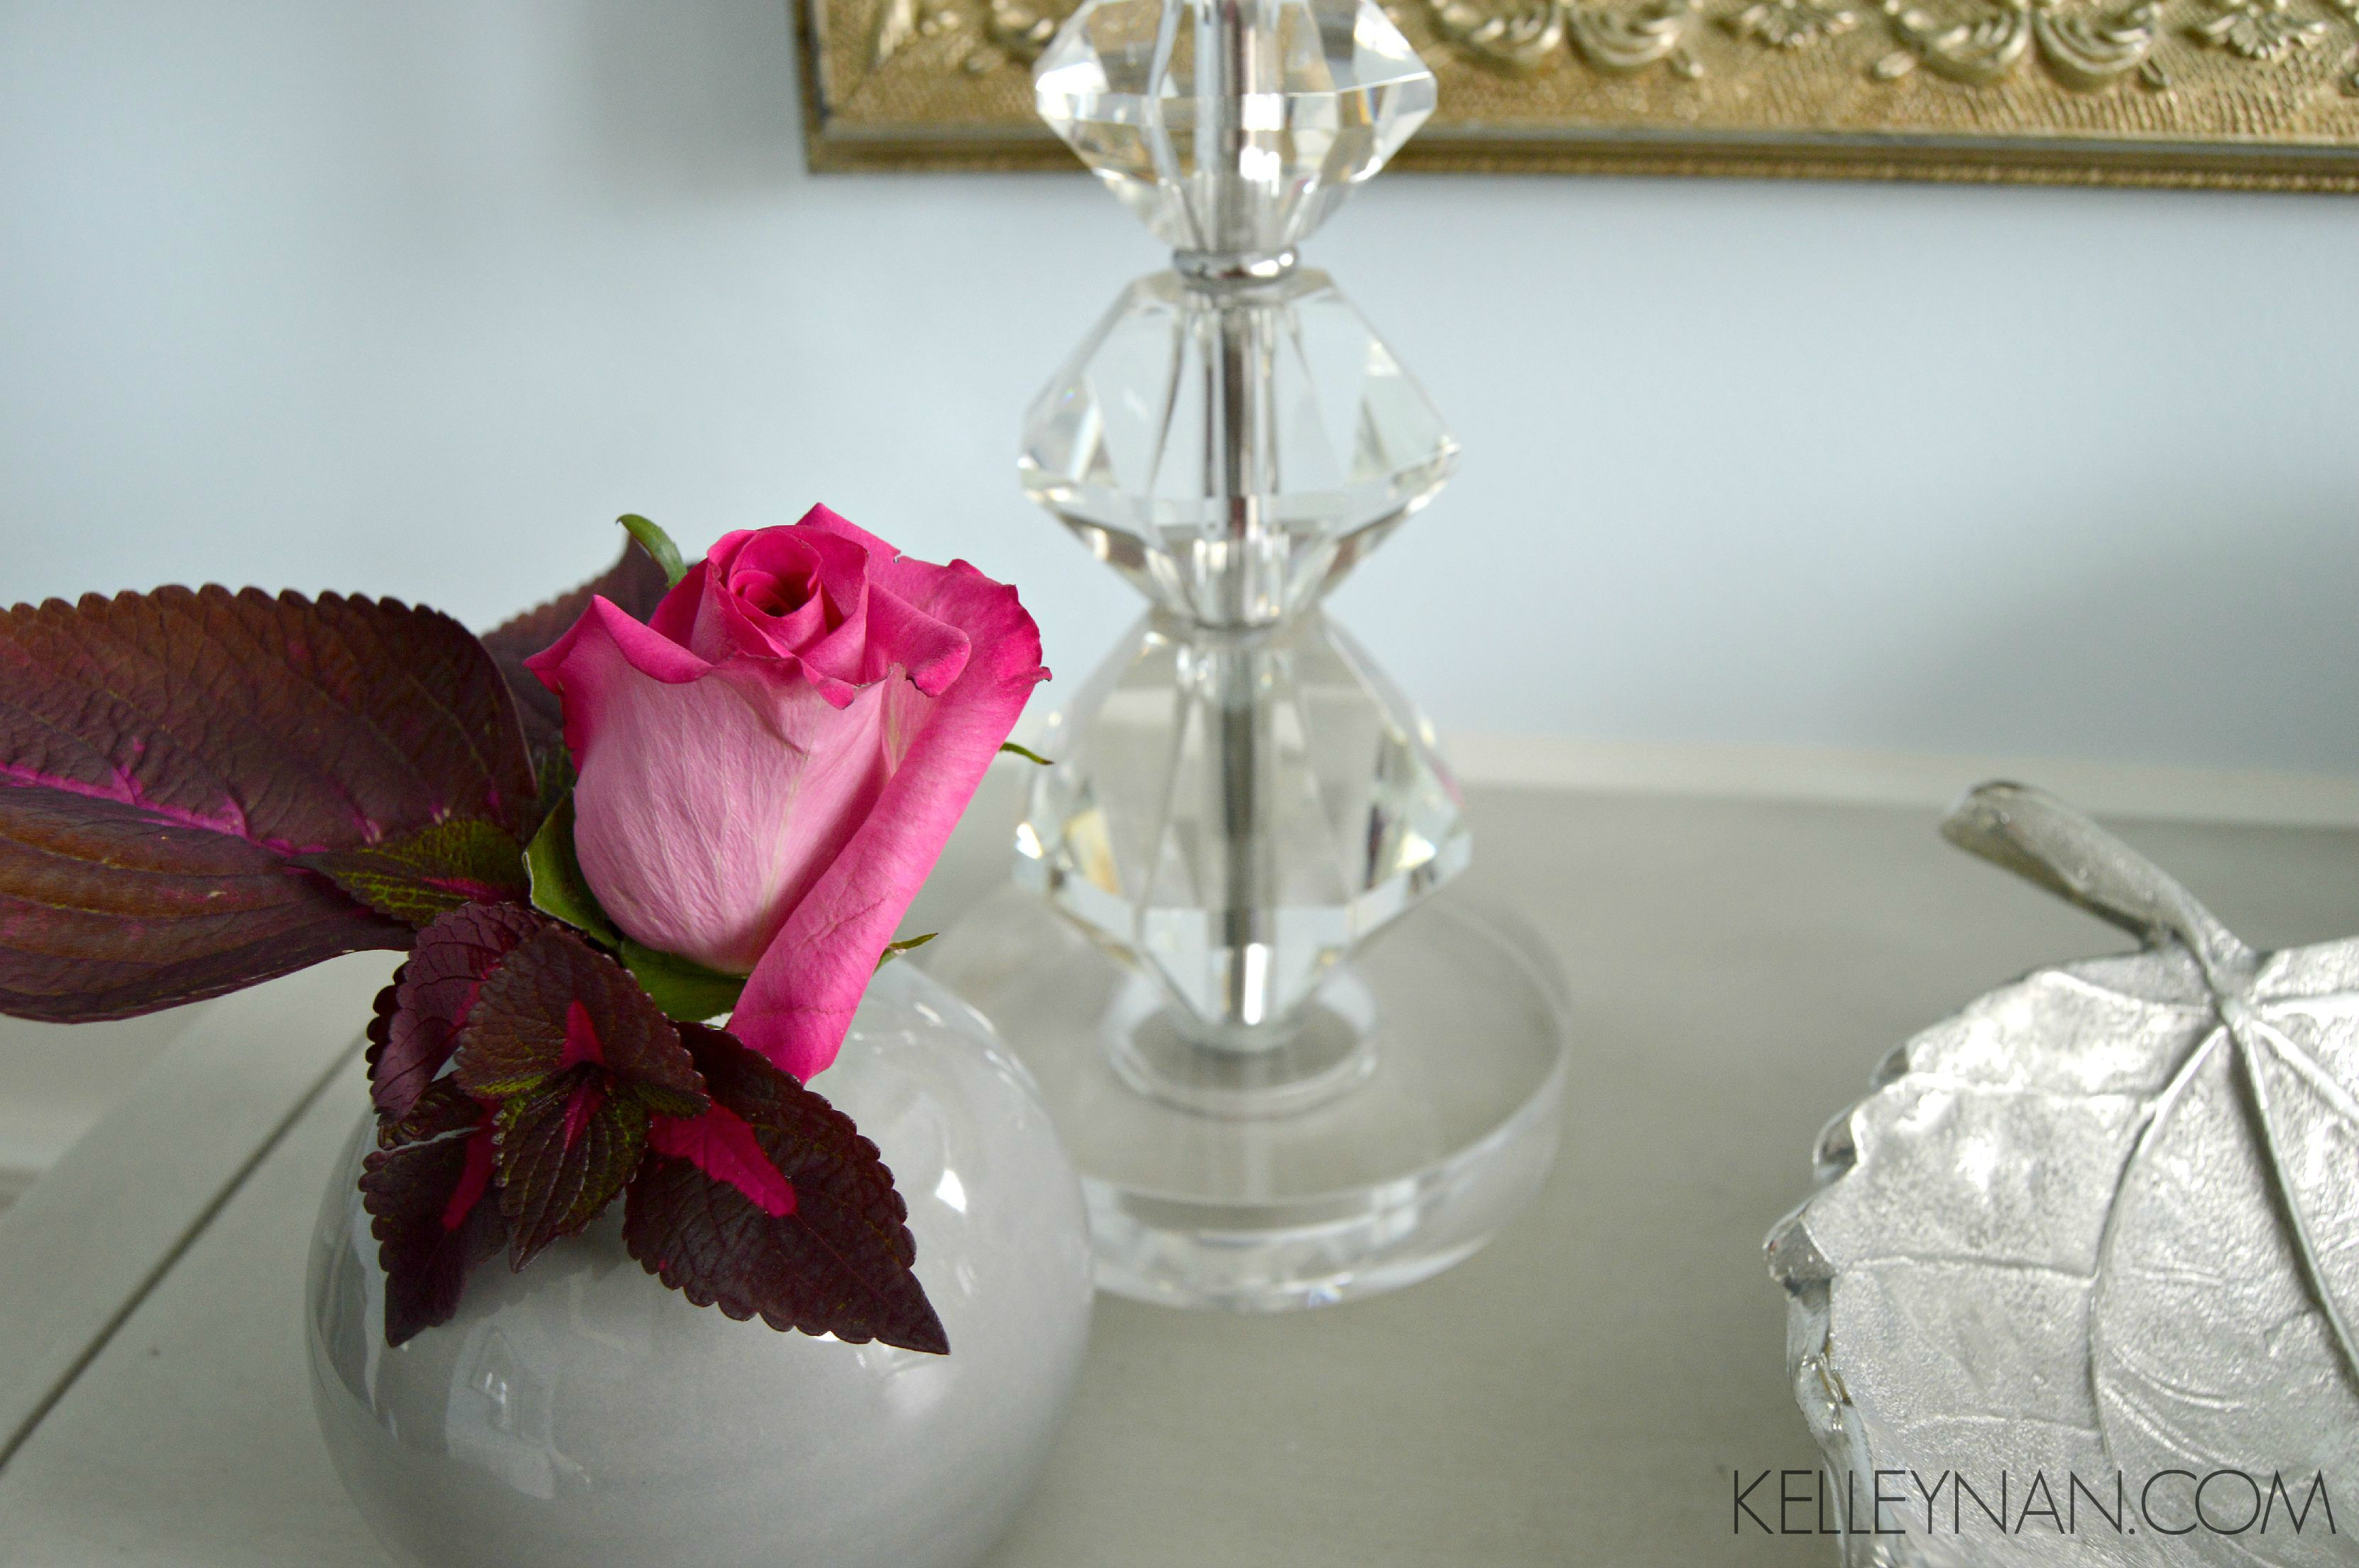 Red coleus and pink rose bud in the formal dining room